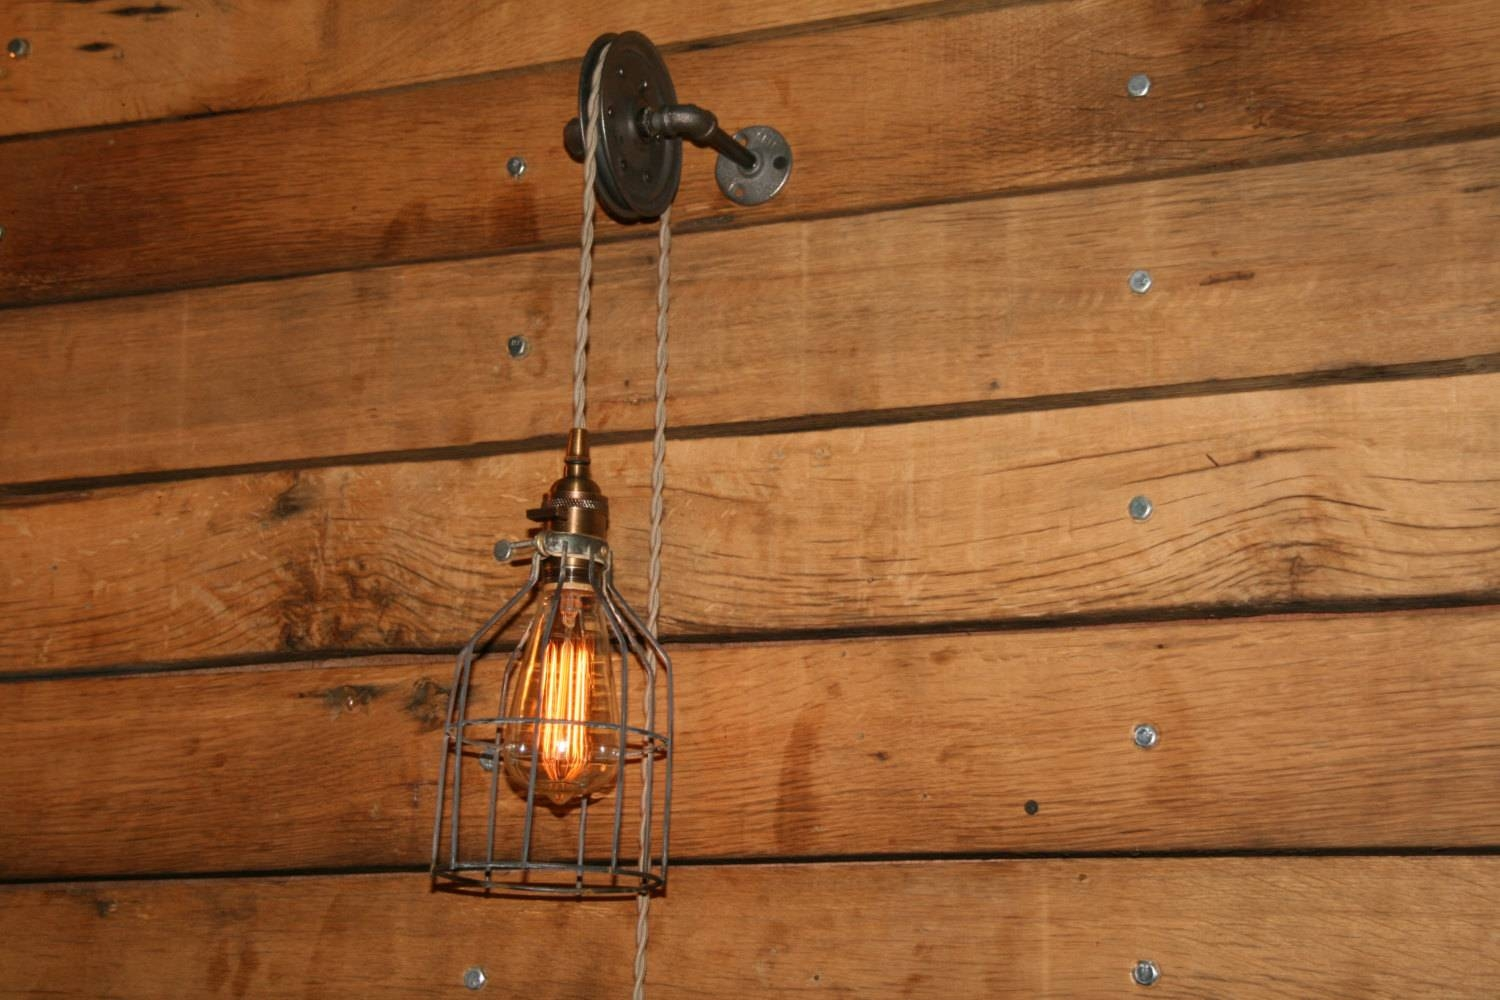 Pulley Pendant Light. Pulley Pendant Light Bathroom Traditional with regard to Pulley Lights Fixtures (Image 14 of 15)